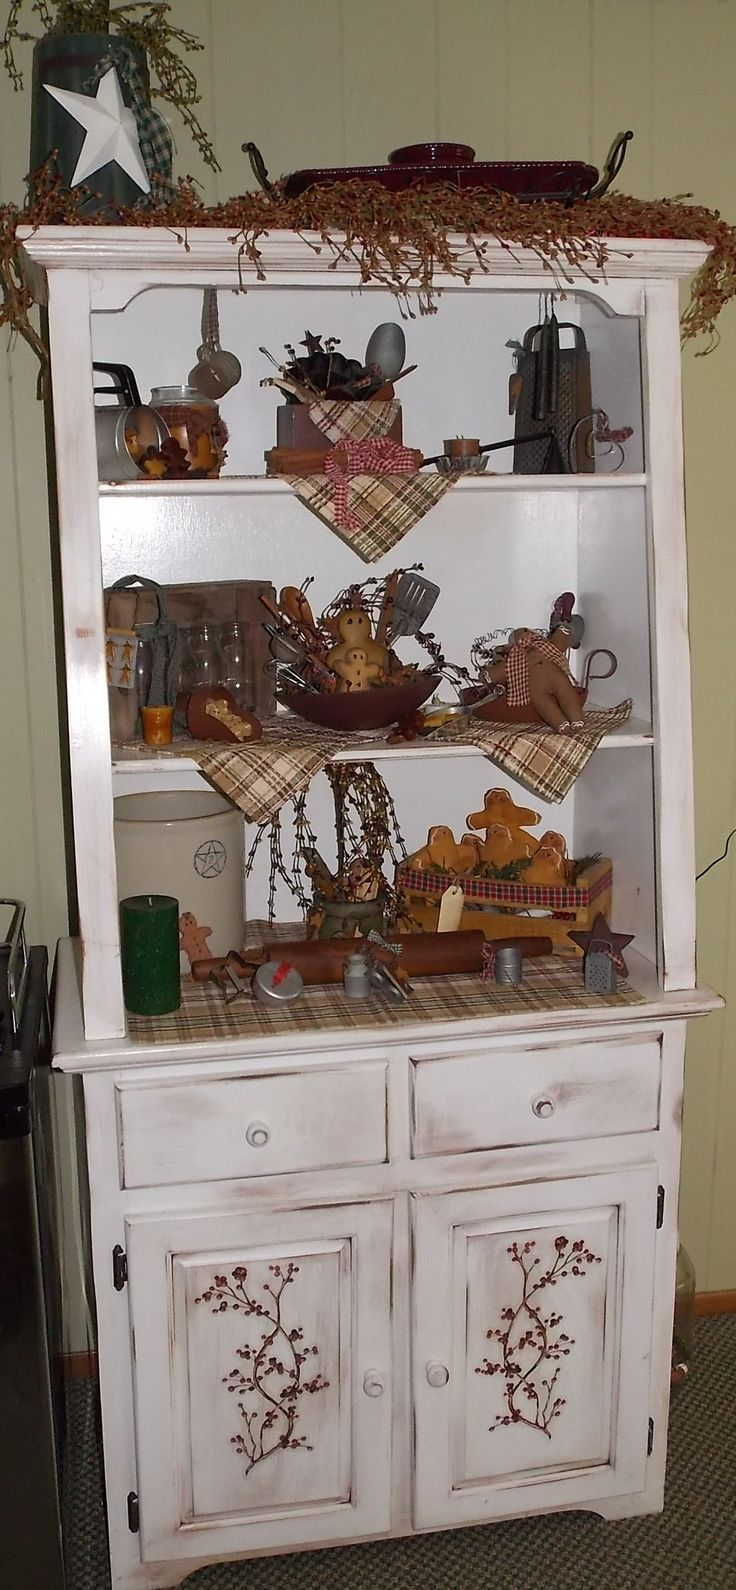 Country Hutch. I would have stars on the front instead of the berries. Still adorable regardless :)